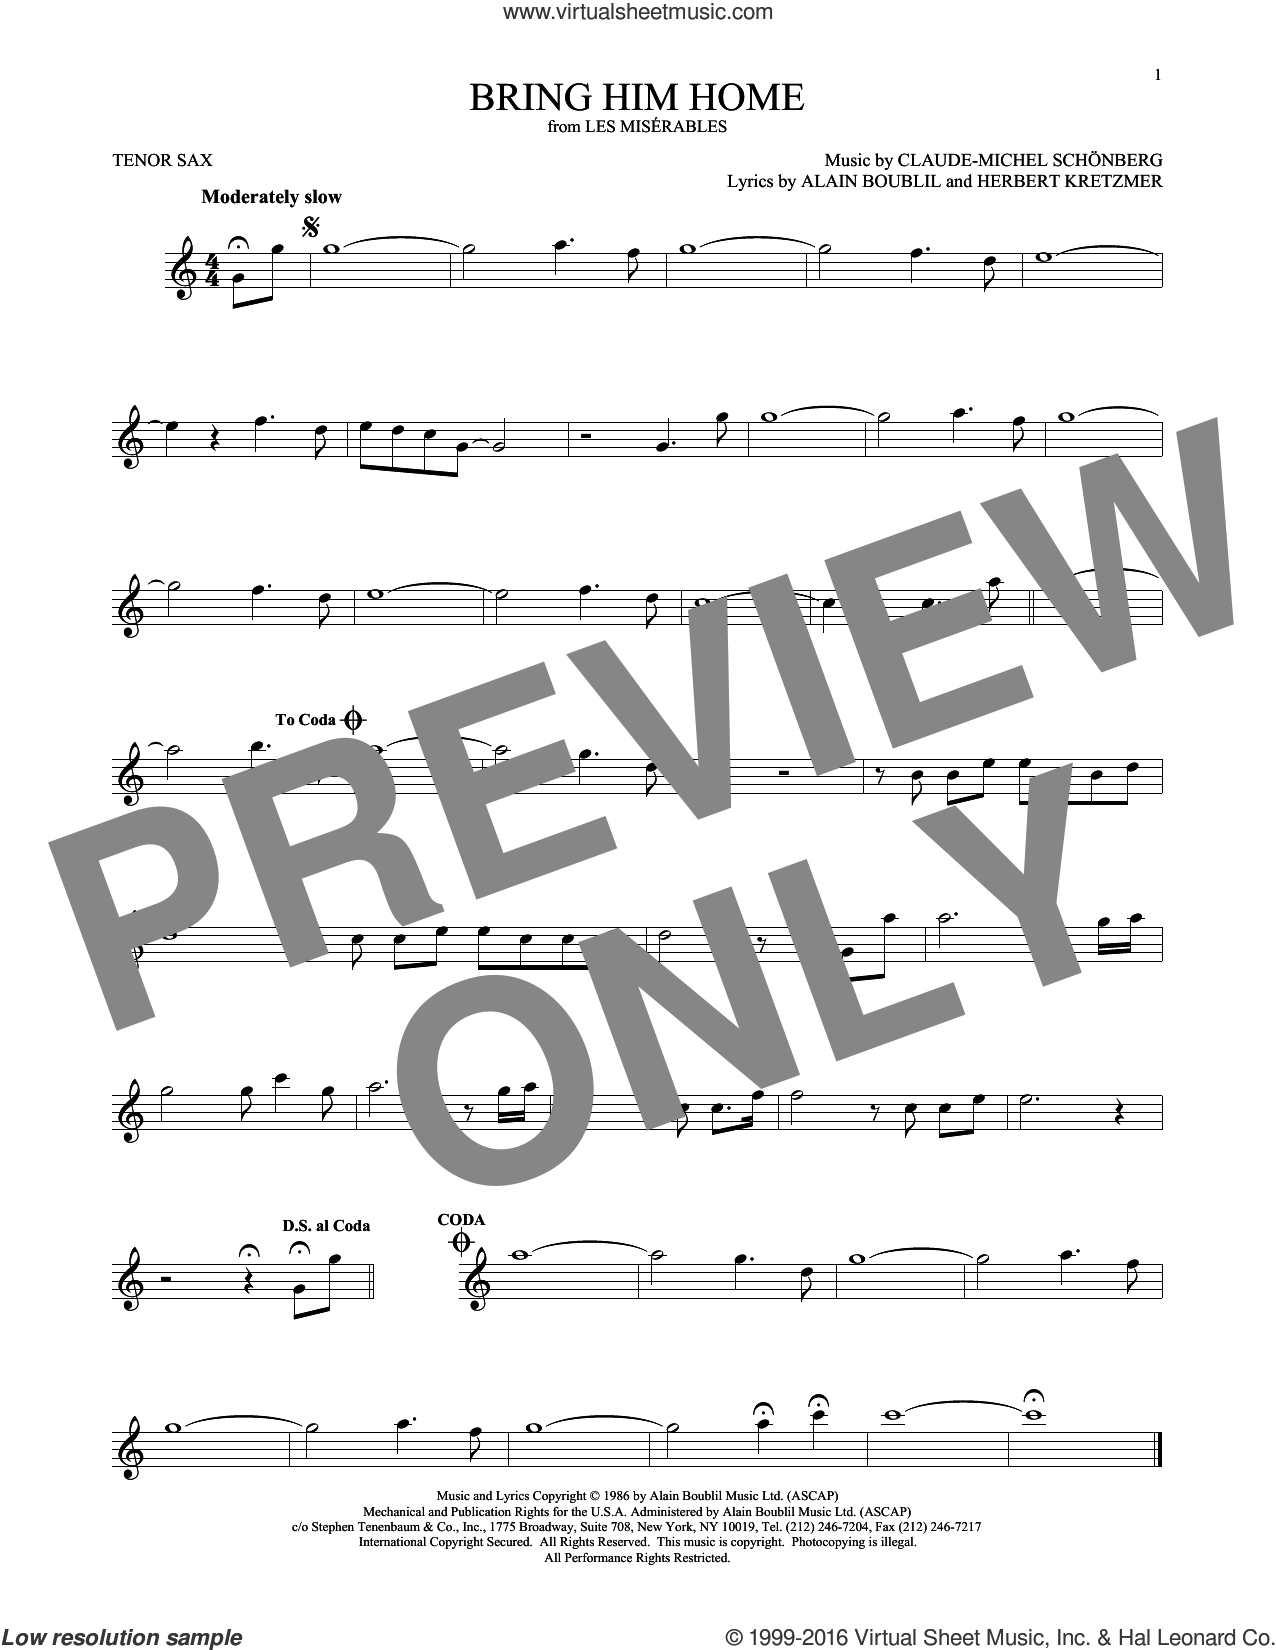 Bring Him Home sheet music for tenor saxophone solo by Alain Boublil, Claude-Michel Schonberg and Herbert Kretzmer, intermediate skill level